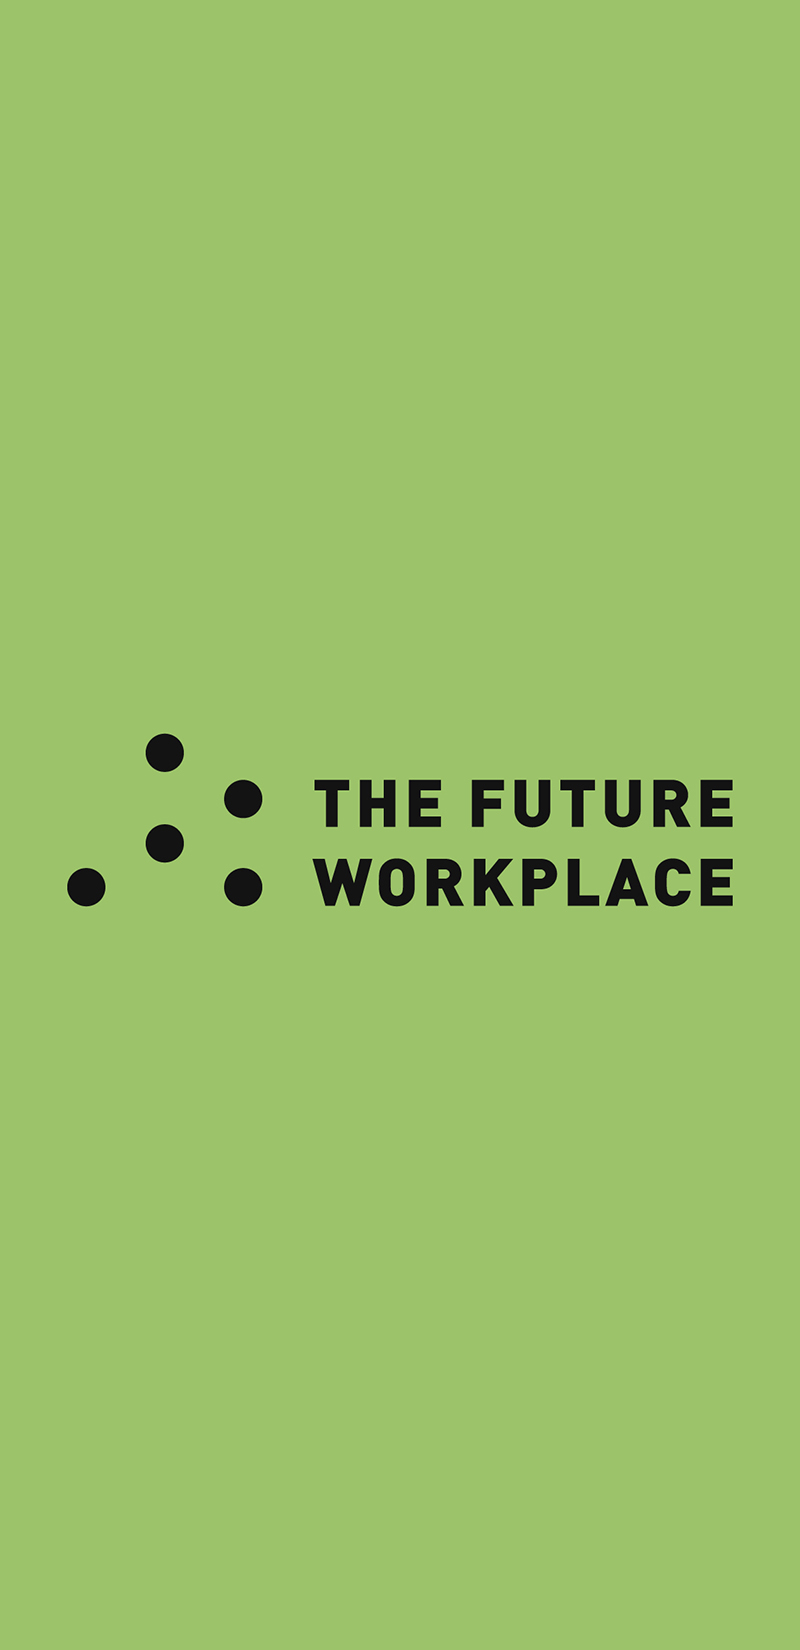 THE FUTURE WORKPLACE